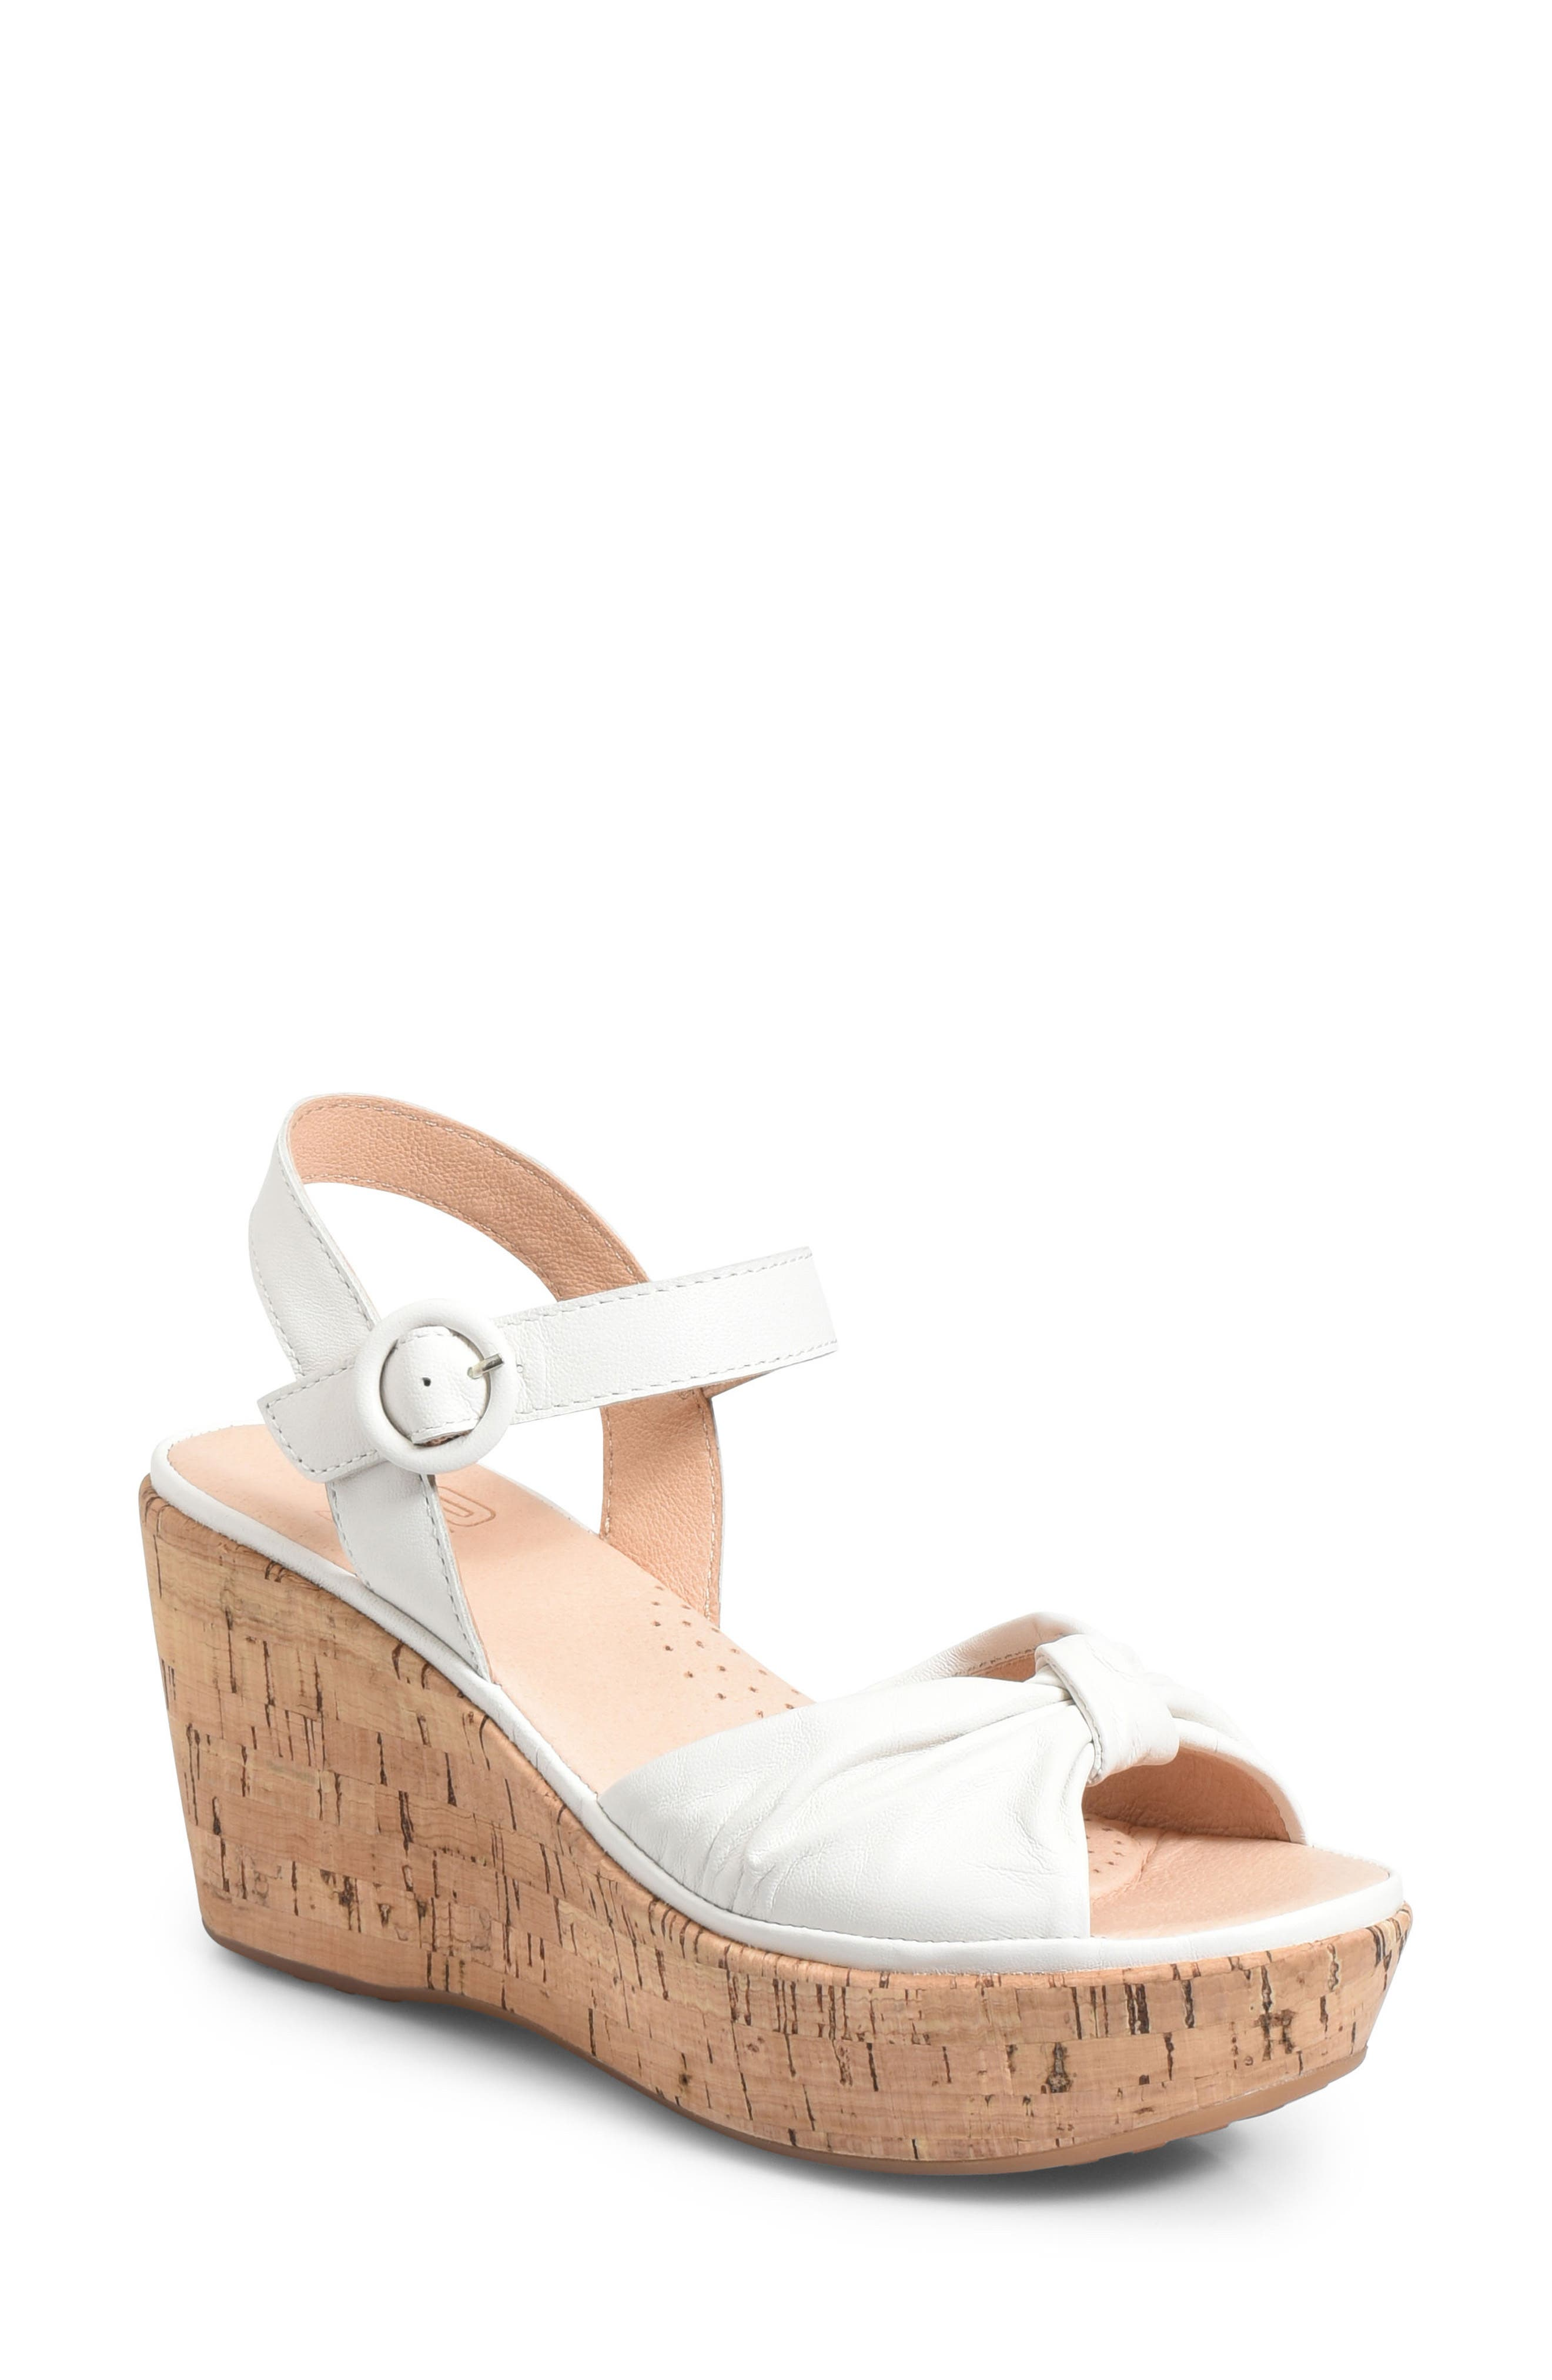 Heavenly Platform Wedge Sandal,                         Main,                         color, White Leather